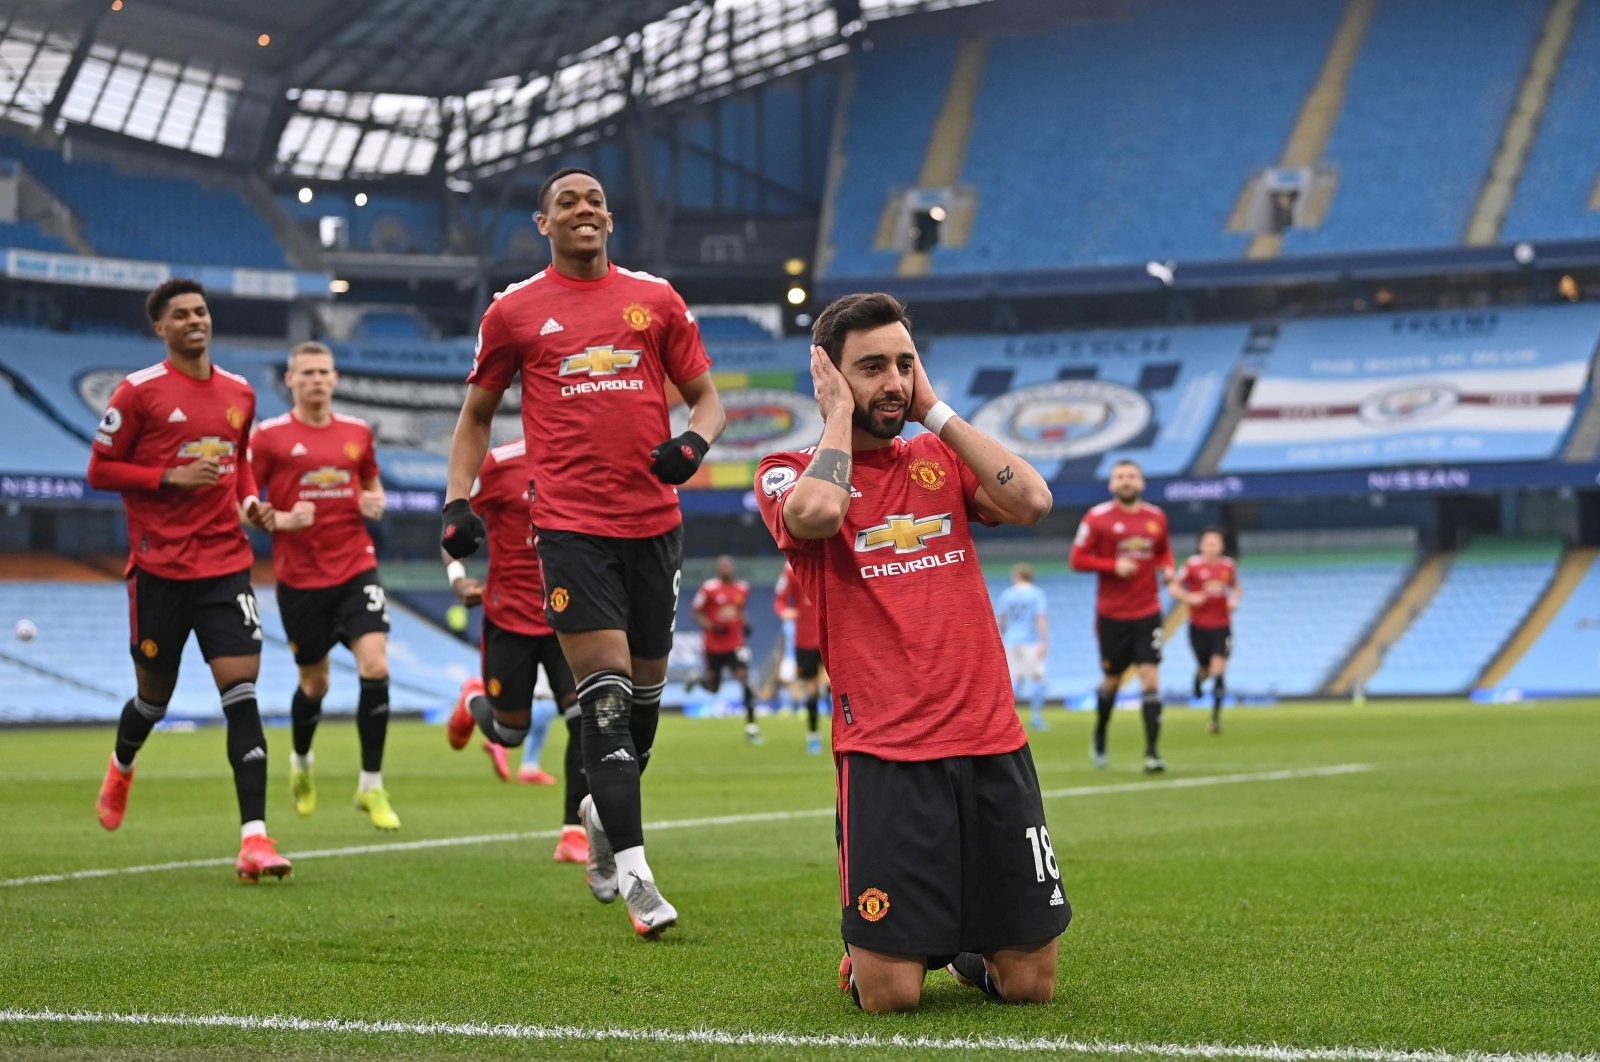 Manchester United's Portuguese midfielder Bruno Fernandes (R) celebrates with teammates after scoring the opening goal from the penalty spot during the English Premier League football match between Manchester City and Manchester United at the Etihad Stadium in Manchester, northwest England, on March 7, 2021. (AFP Photo)